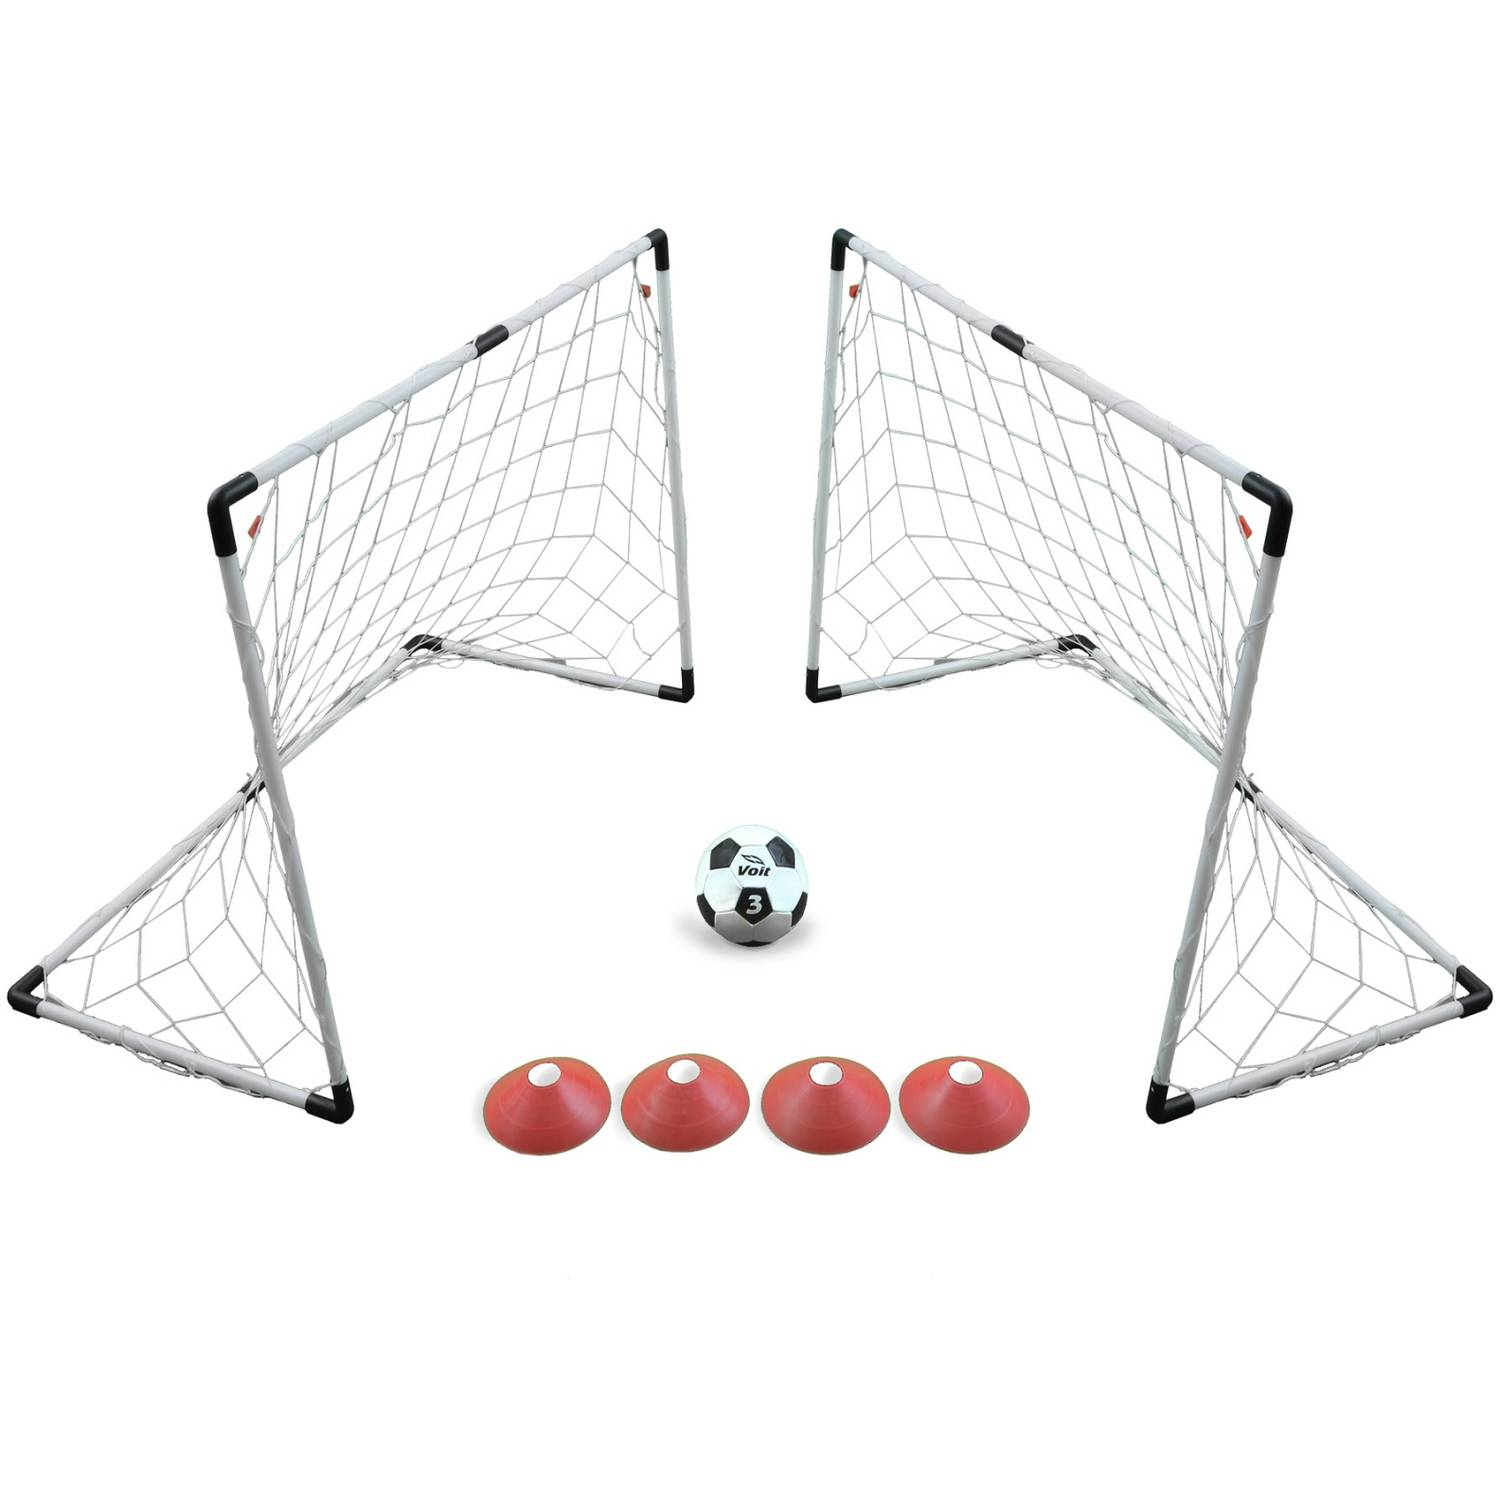 Voit 2 Goal 4' x 3' Soccer Game Set by Generic